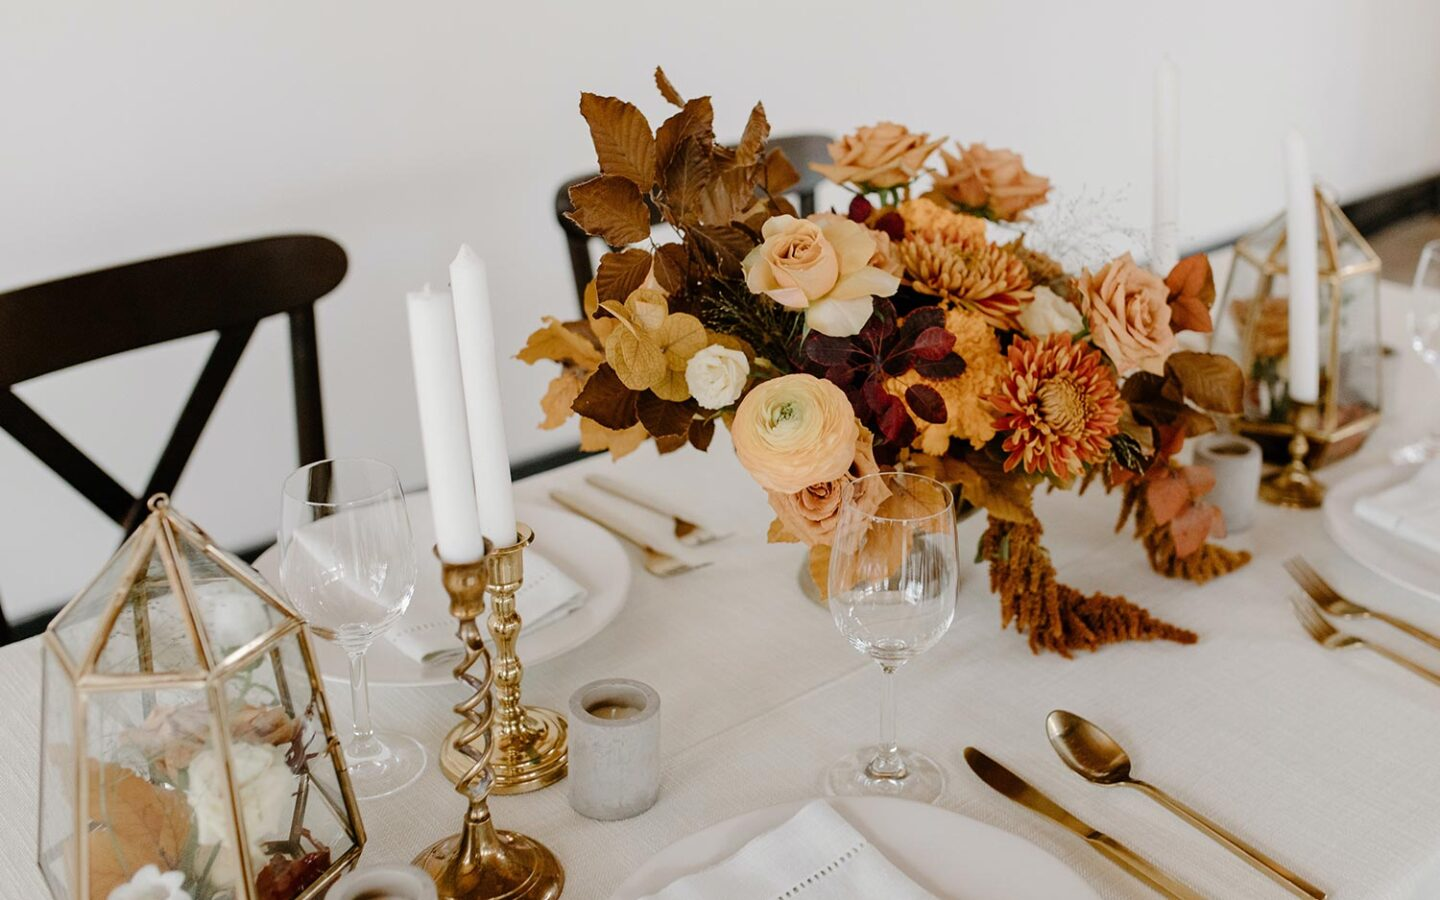 table setting with autumn flowers and gold cutlery